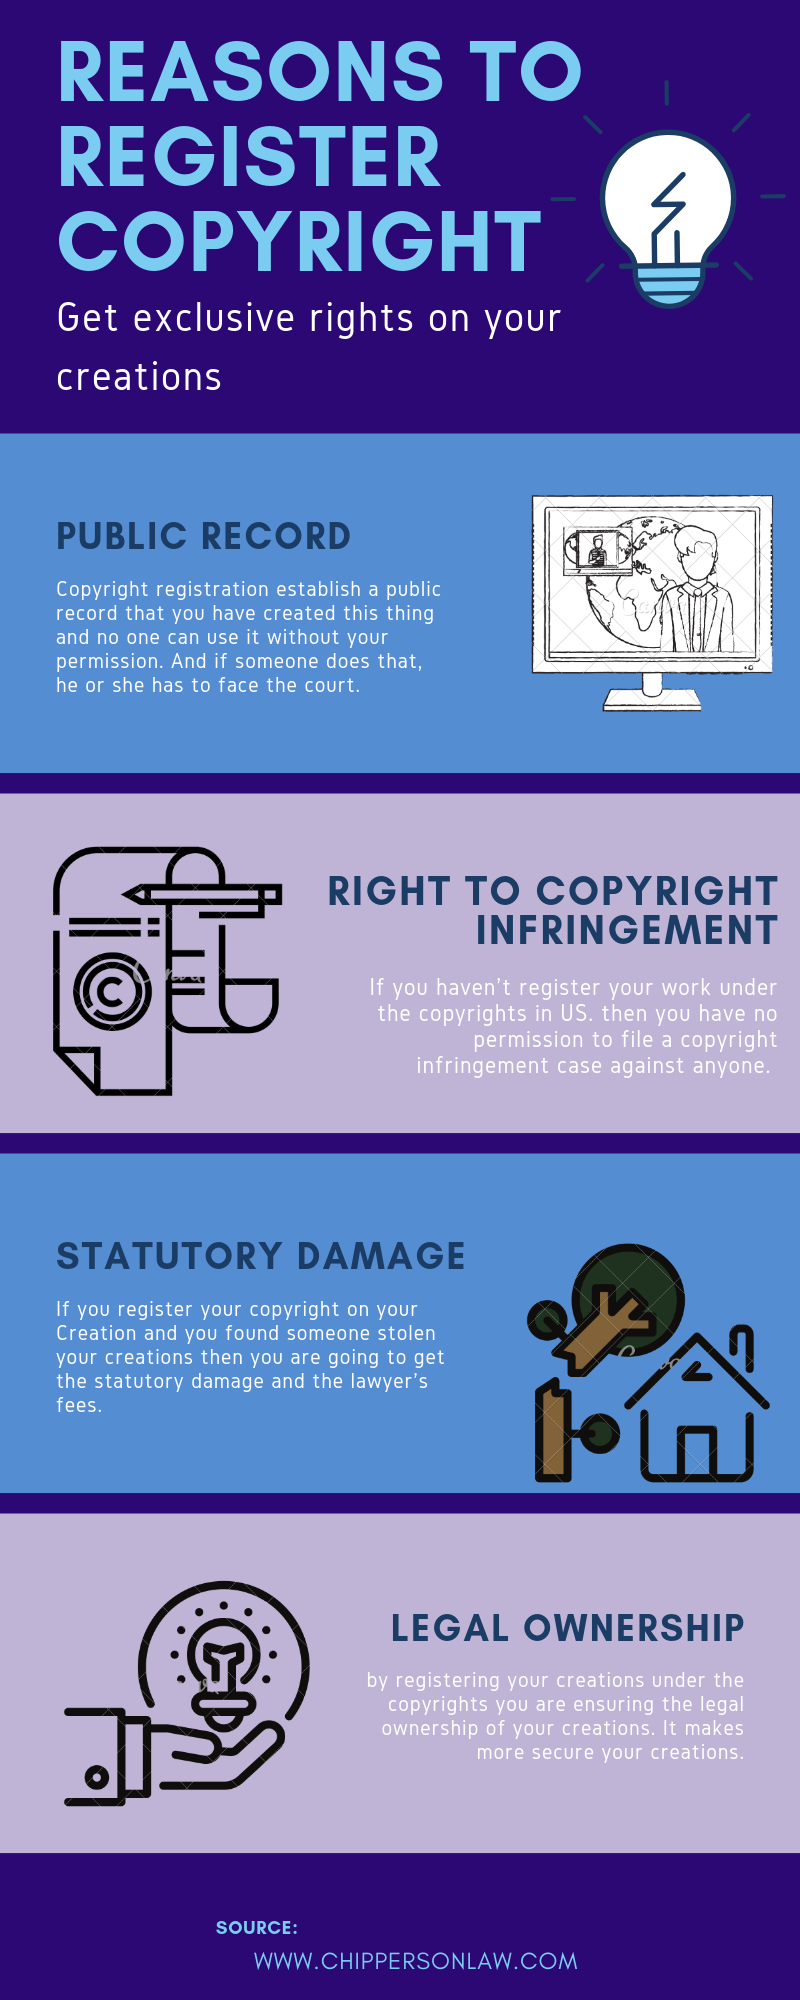 Reasons To Register Copyright Law Firm Intellectual Property Law Helping People